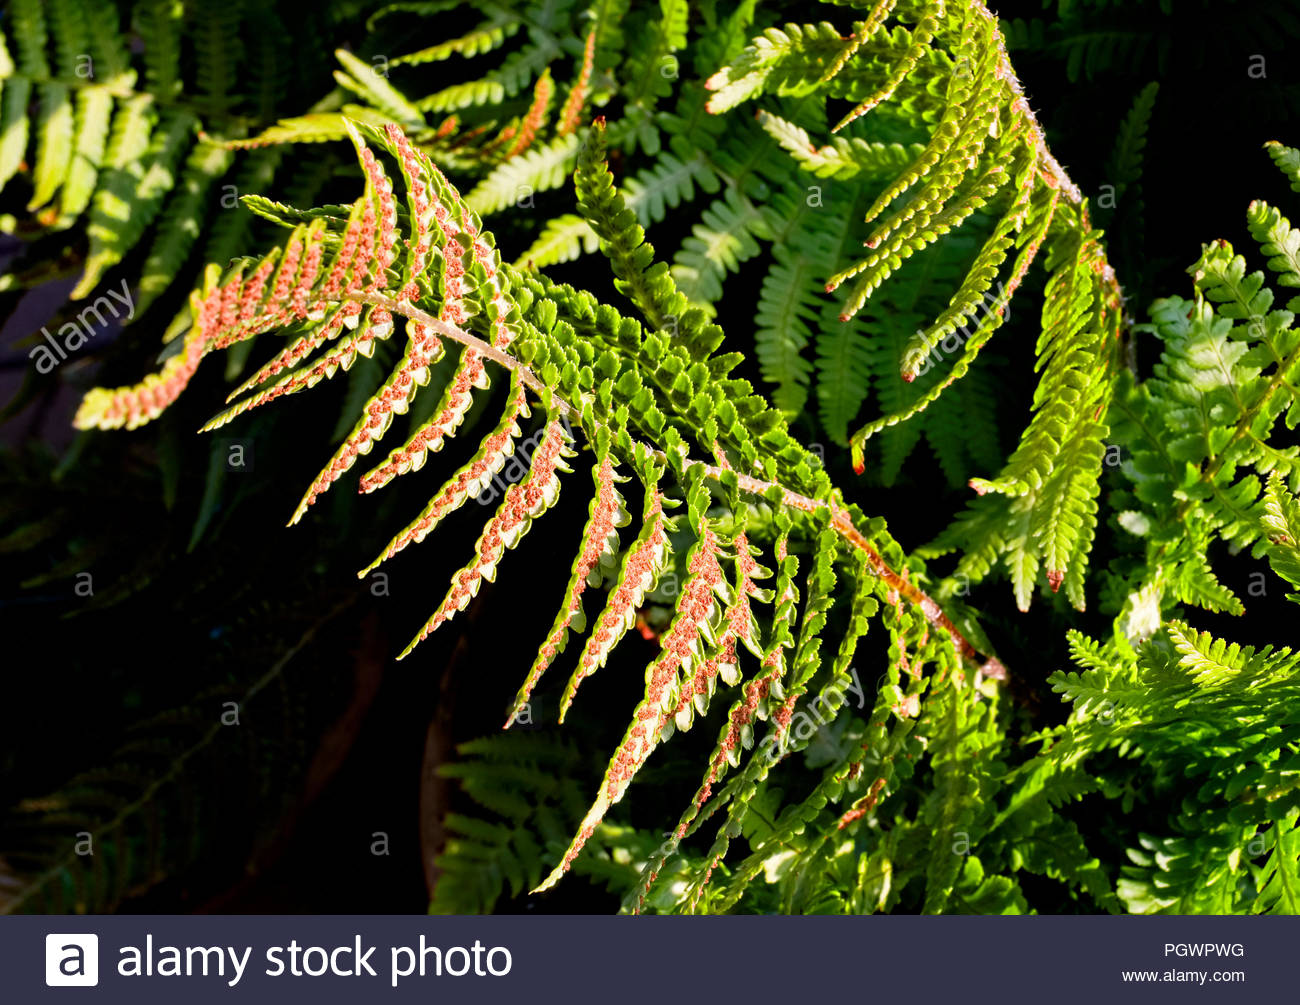 Seeds of fern (Matteuccia struthiopteris) growing on the underside of its fronds Stock Photo